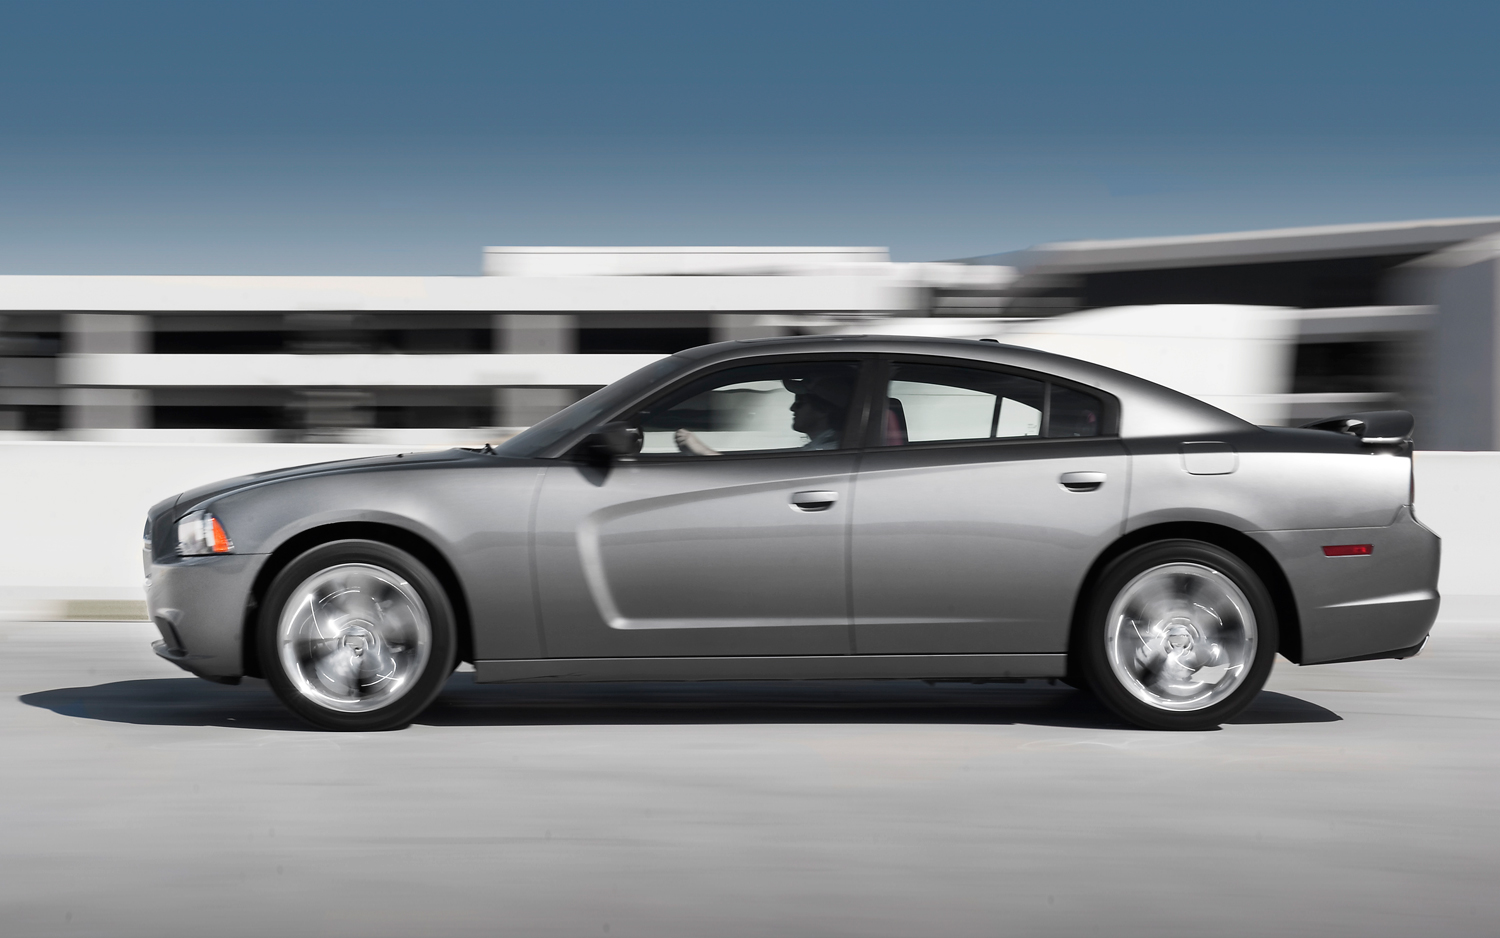 2012 Dodge Charger #12